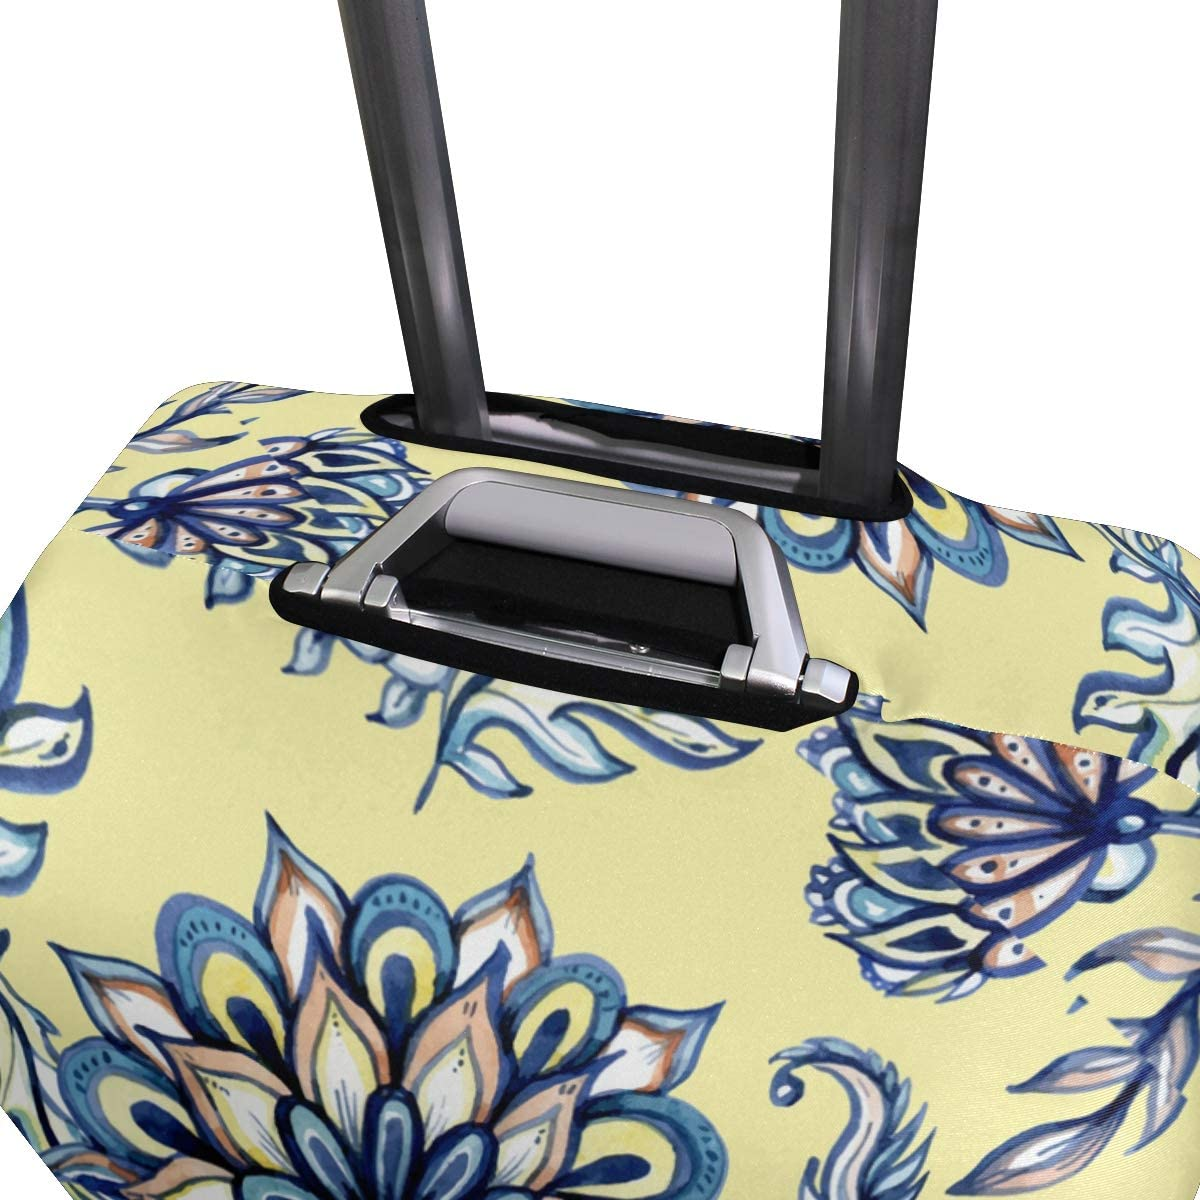 Cute 3D Watercolor Flower Pattern In Batik Style Pattern Luggage Protector Travel Luggage Cover Trolley Case Protective Cover Fits 18-32 Inch